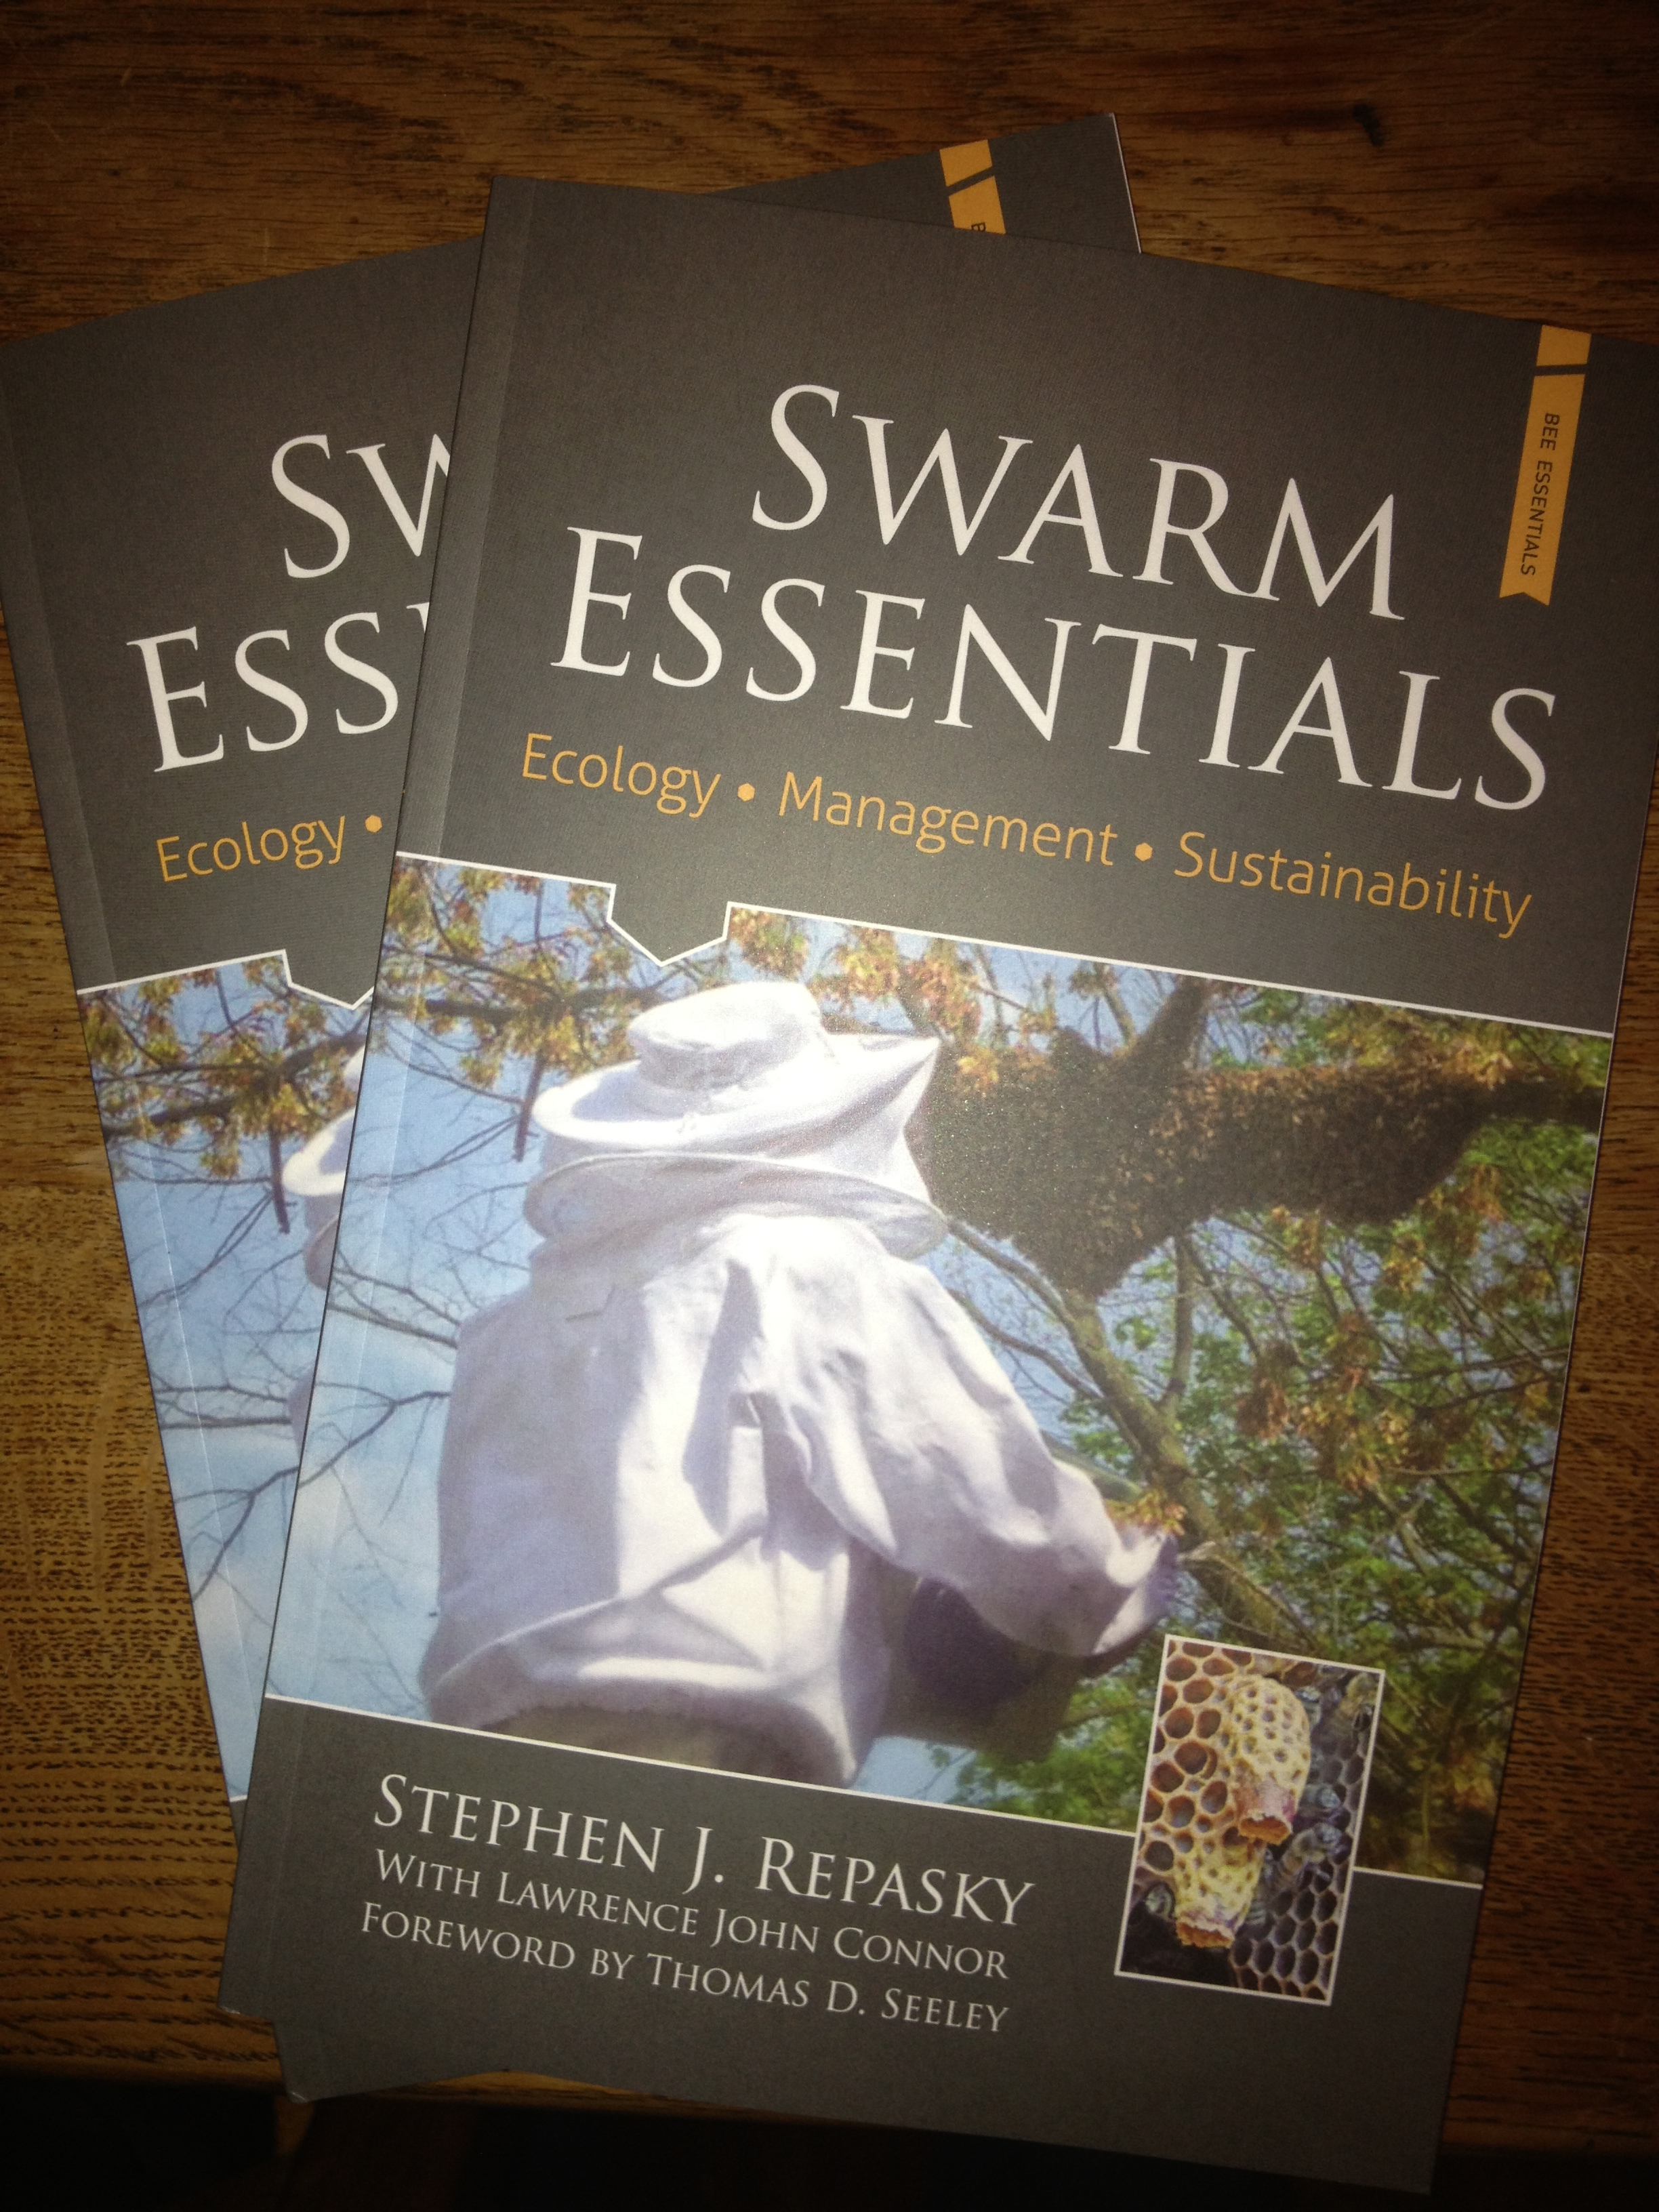 Swarm Essentials, by Stephen J. Repasky with Lawrence John Connor, Foreword by Thomas Seeley.